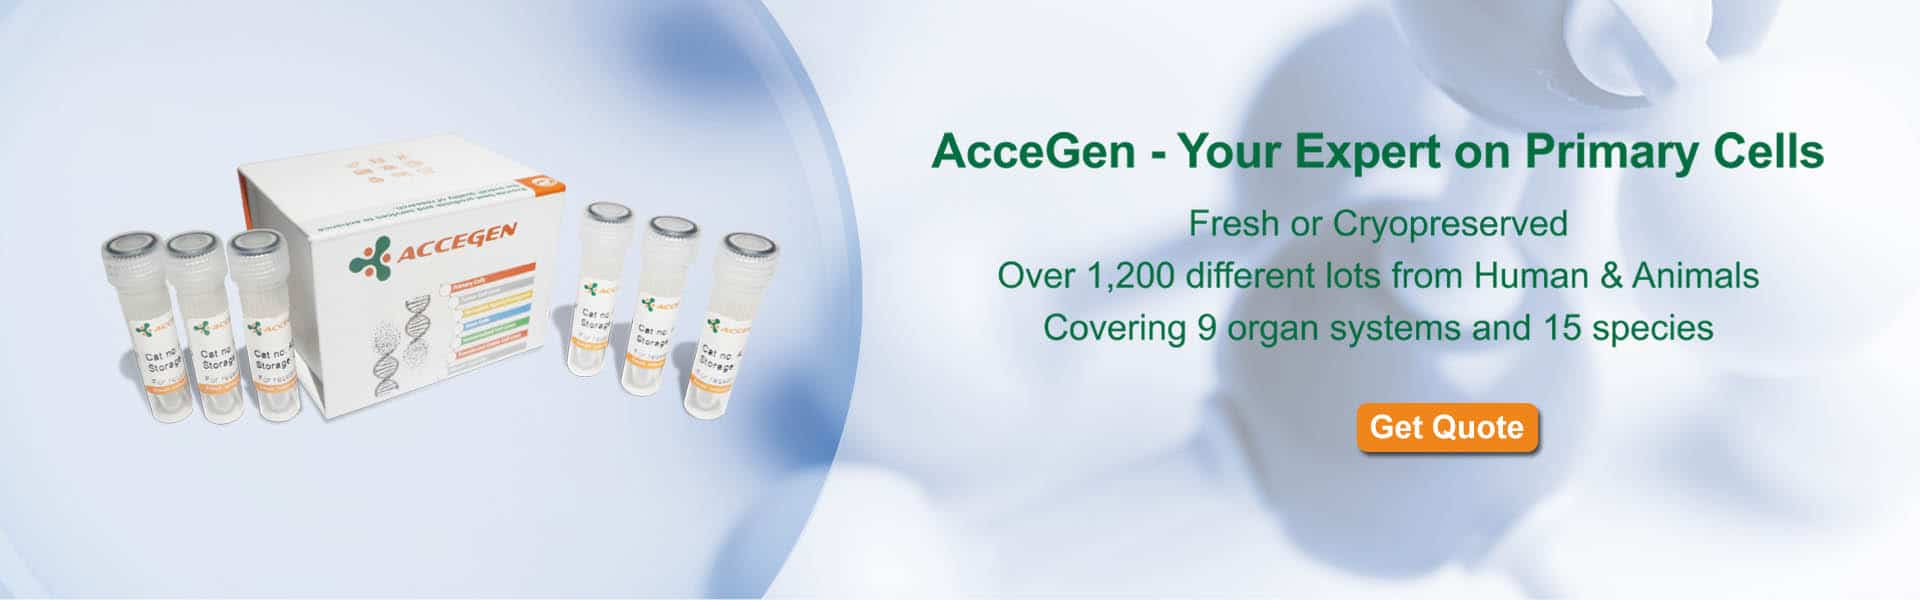 AcceGen - Your Expert on Primary Cells